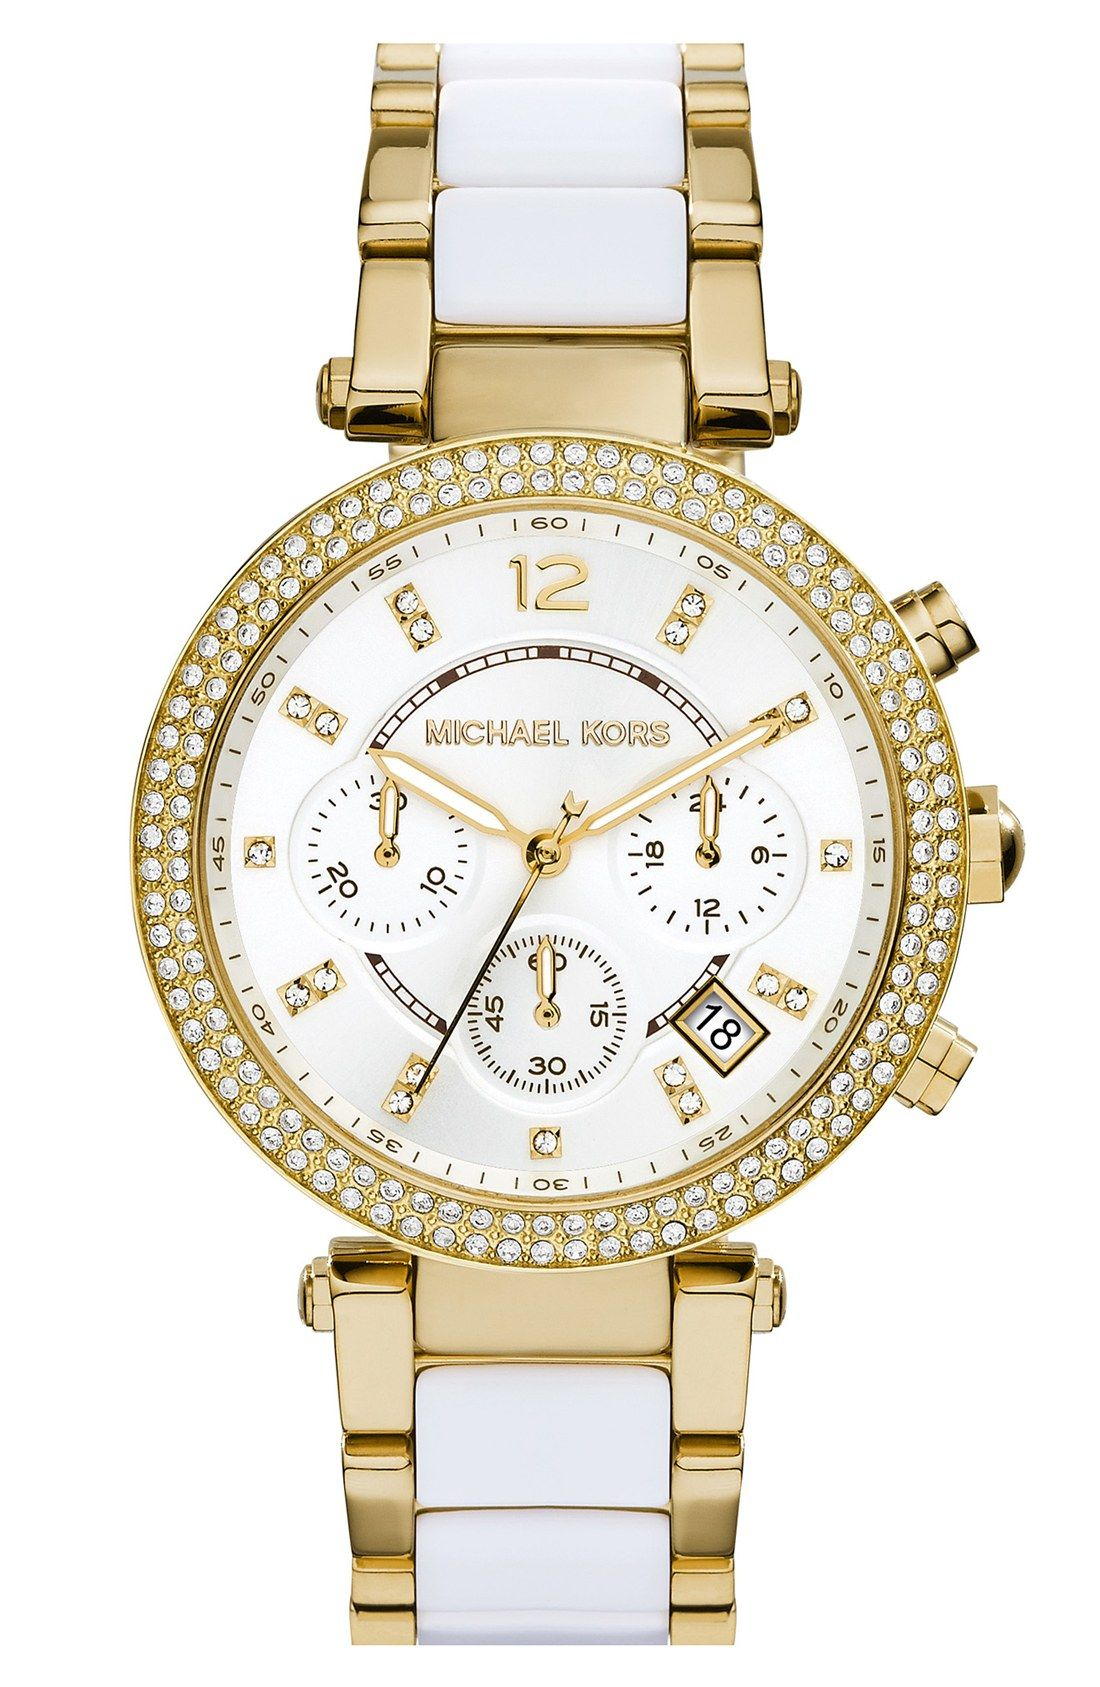 The sparkling crystals on this elegant Michael Kors watch are seriously dazzling.